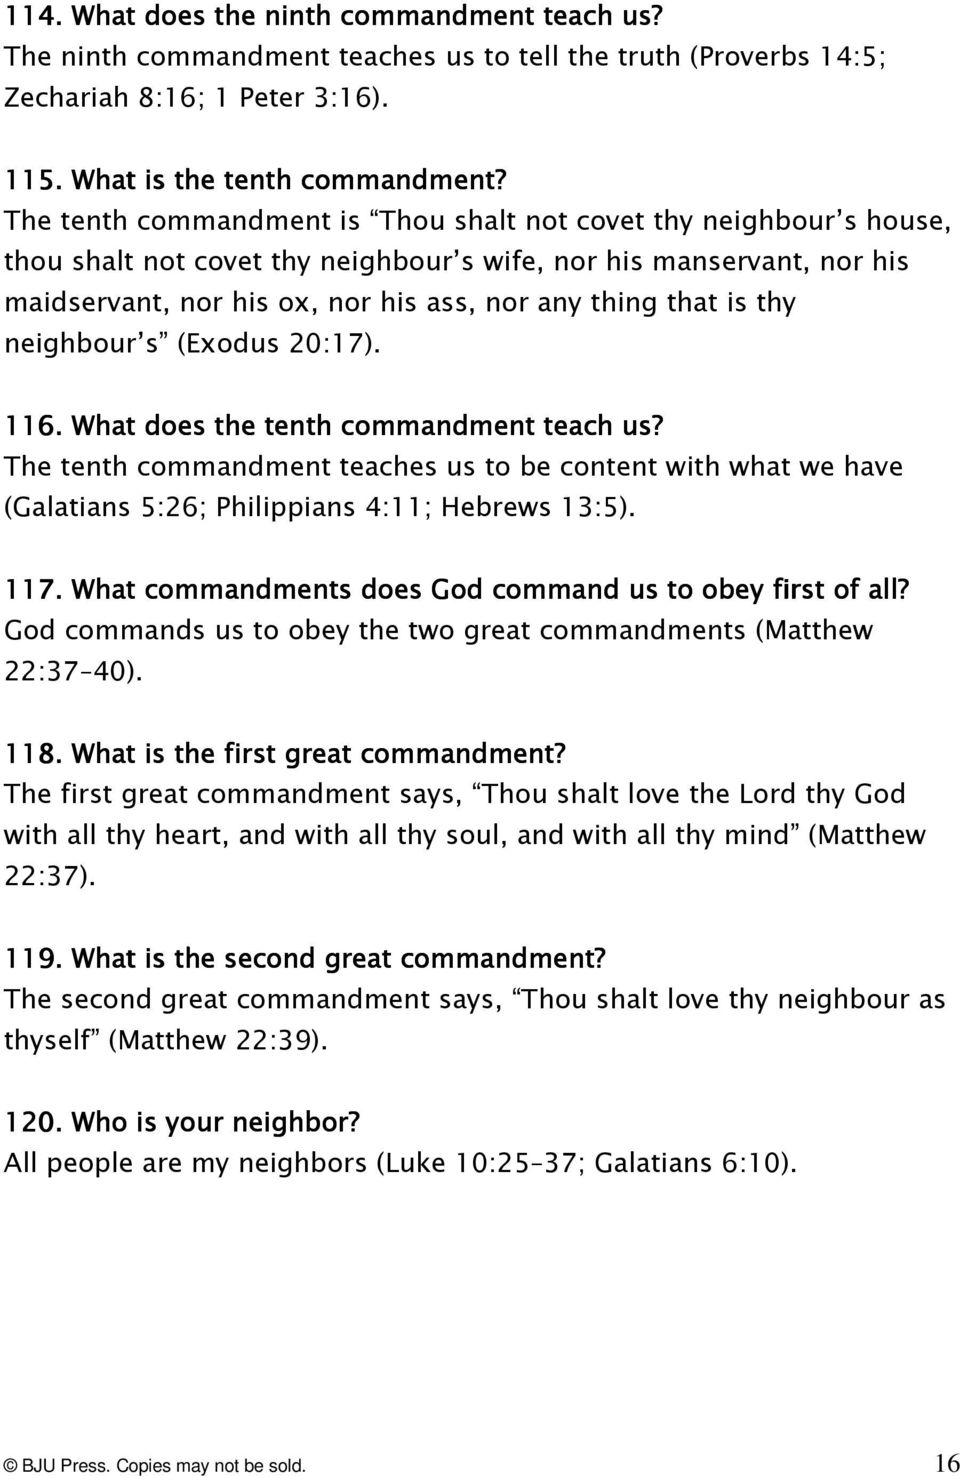 thy neighbour s (Exodus 20:17). 116.. What does the tenth commandment teach us? The tenth commandment teaches us to be content with what we have (Galatians 5:26; Philippians 4:11; Hebrews 13:5). 117.